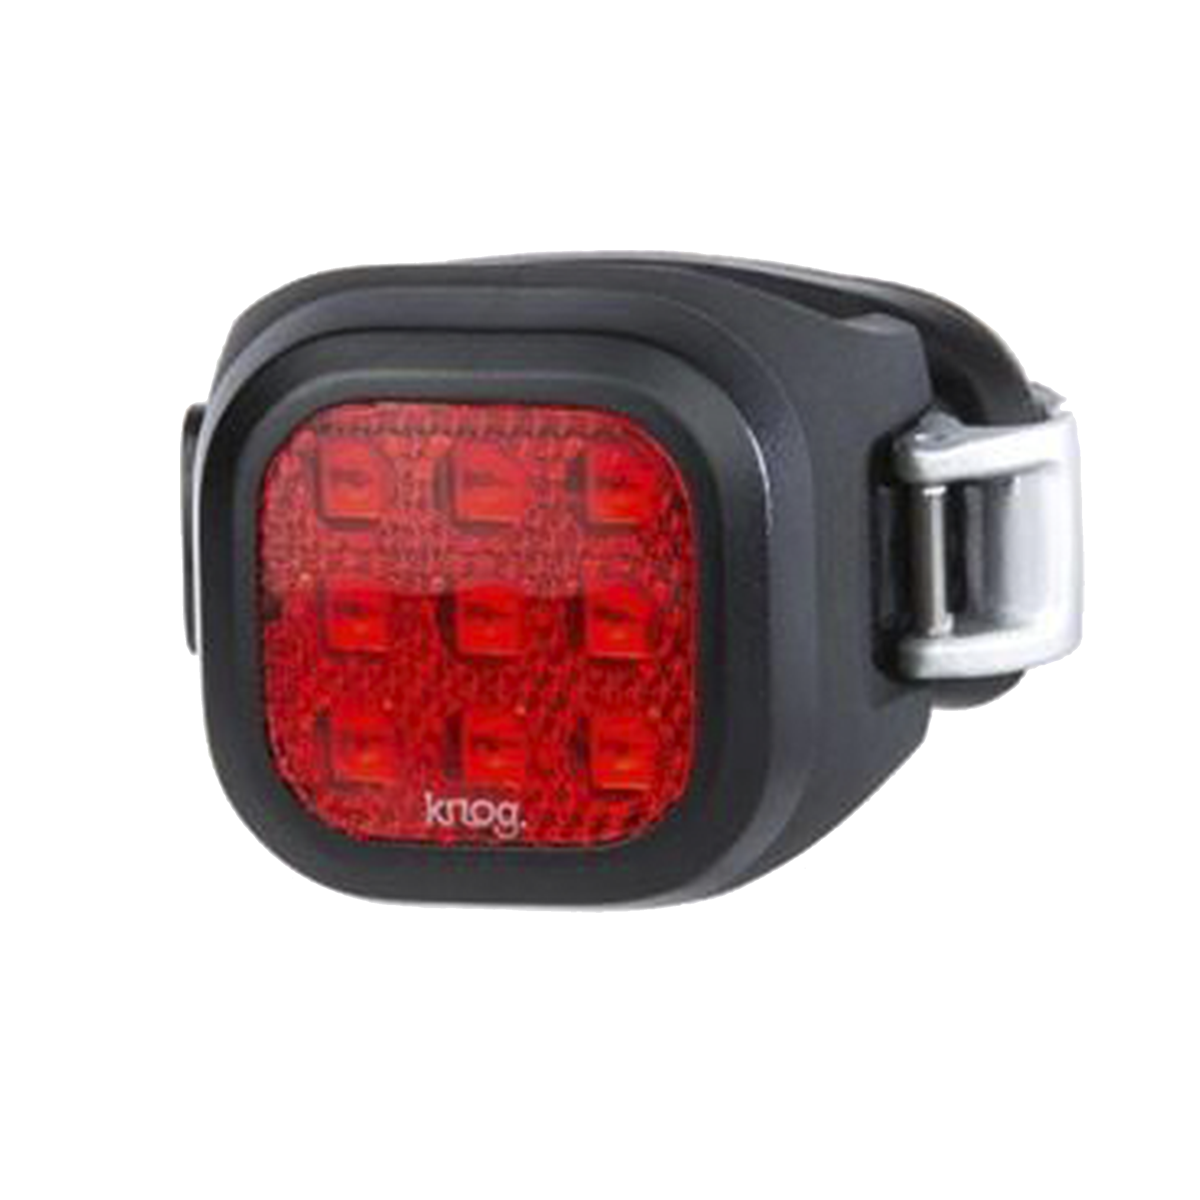 LED tail light (Knog)-2